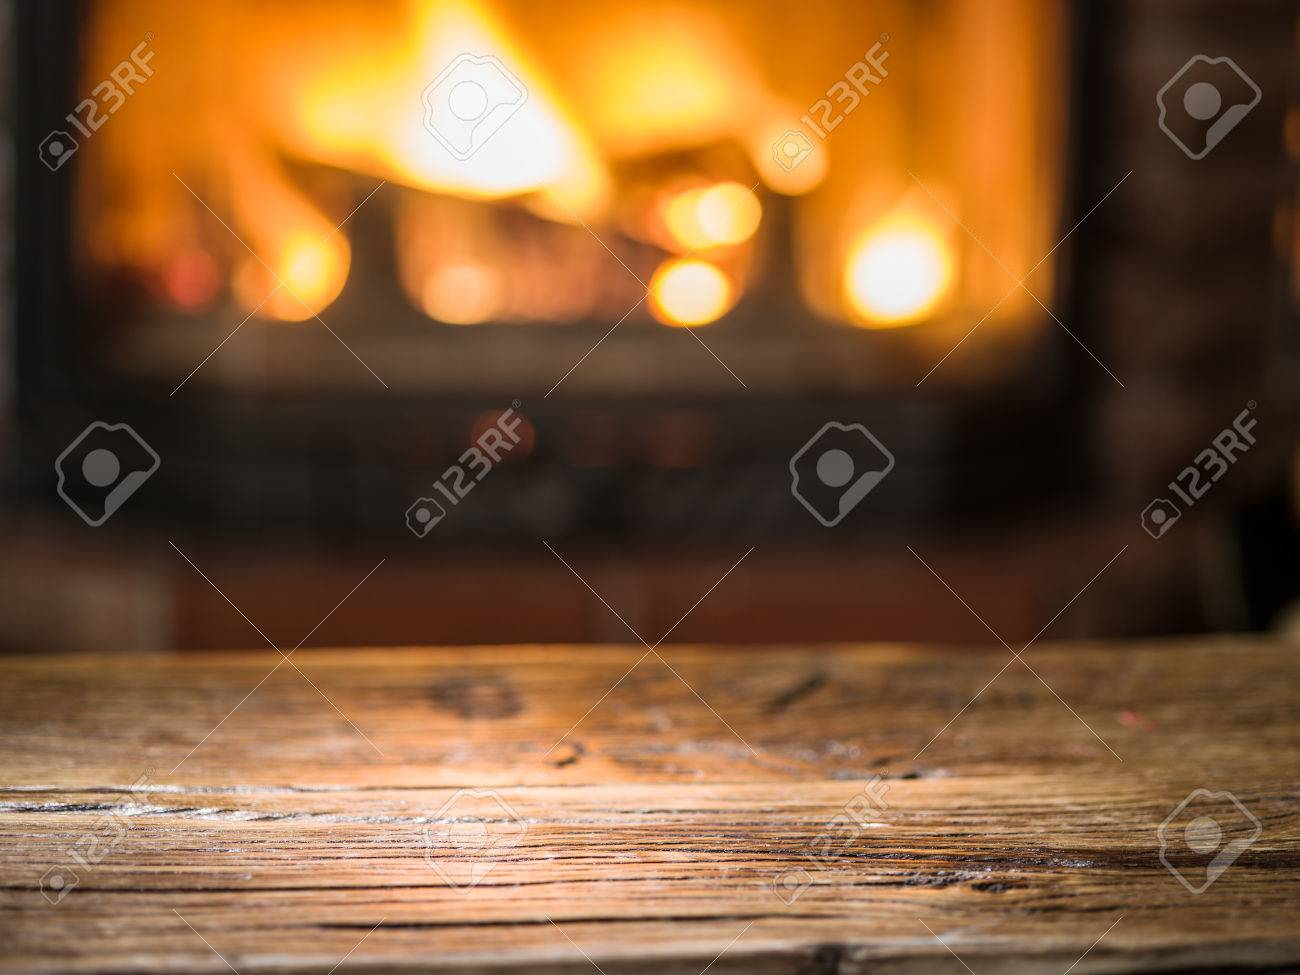 Old wooden table and fireplace with warm fire on the background. Standard-Bild - 60157462